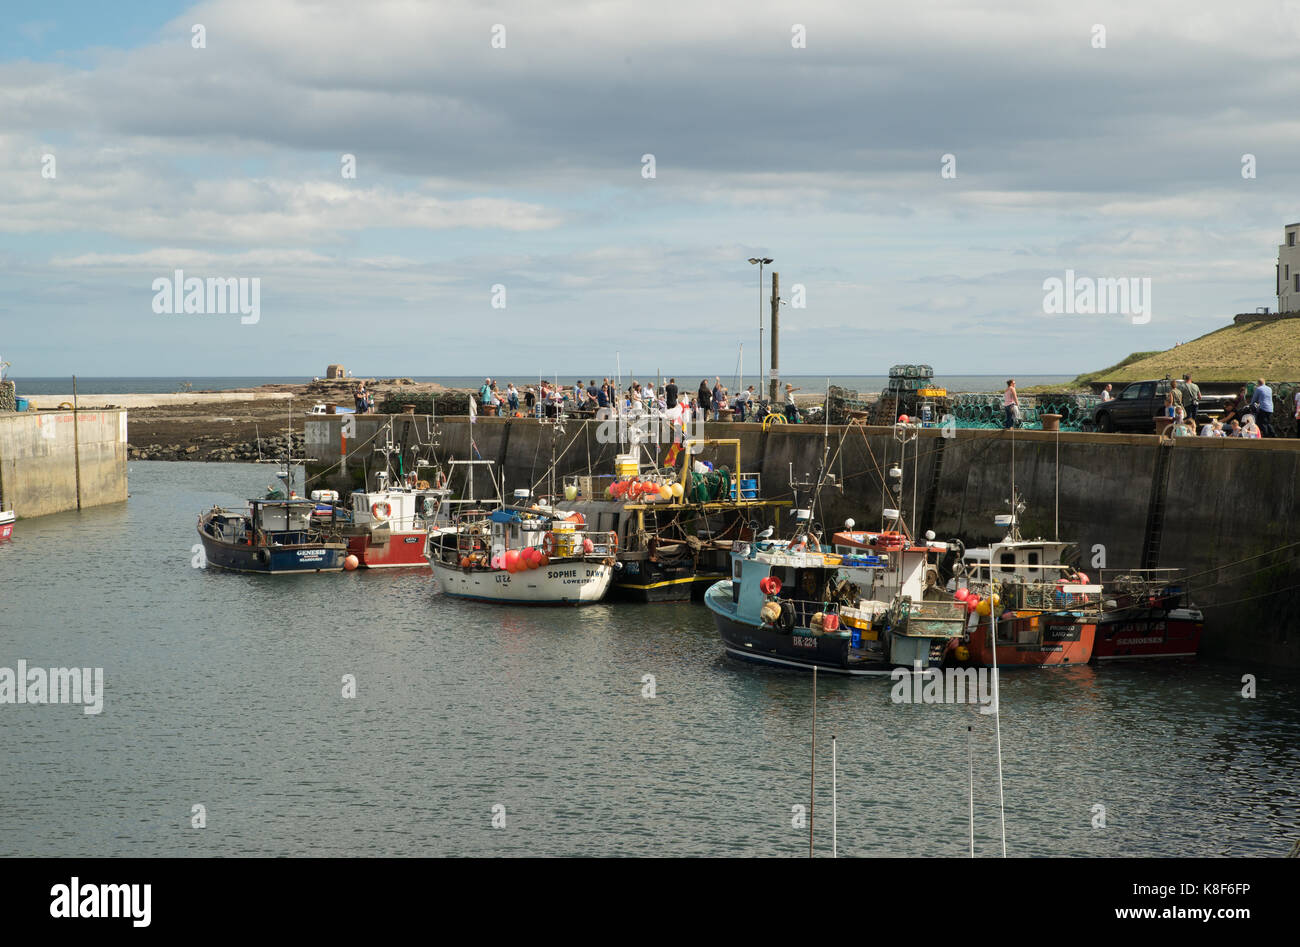 August Bank holiday visitors at Seahouse, Northumberland, England - Stock Image